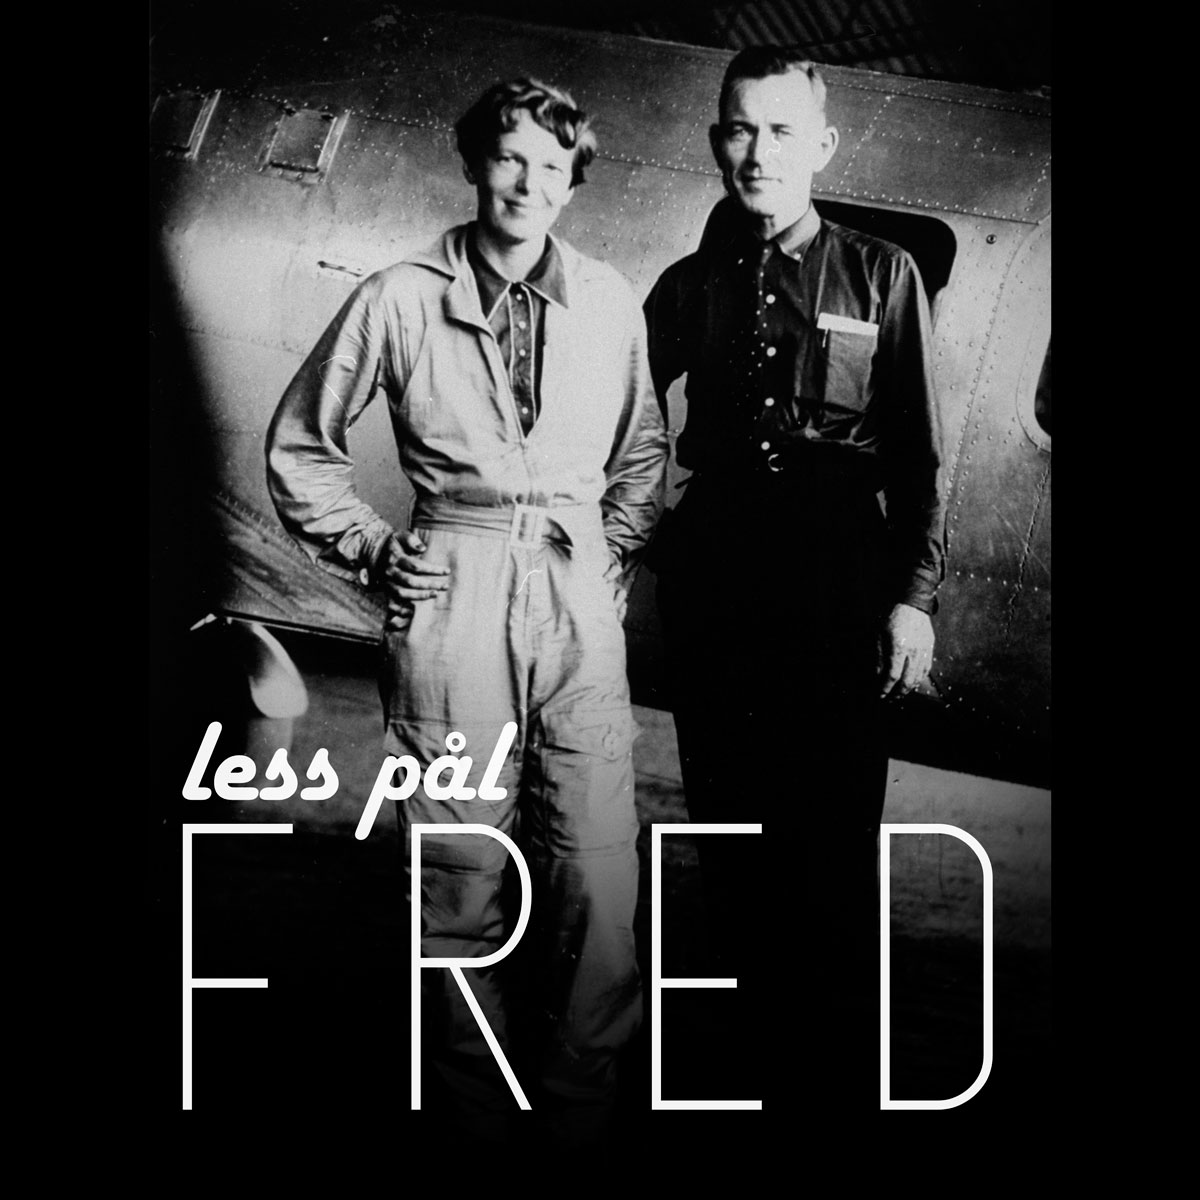 Less Pål - Fred